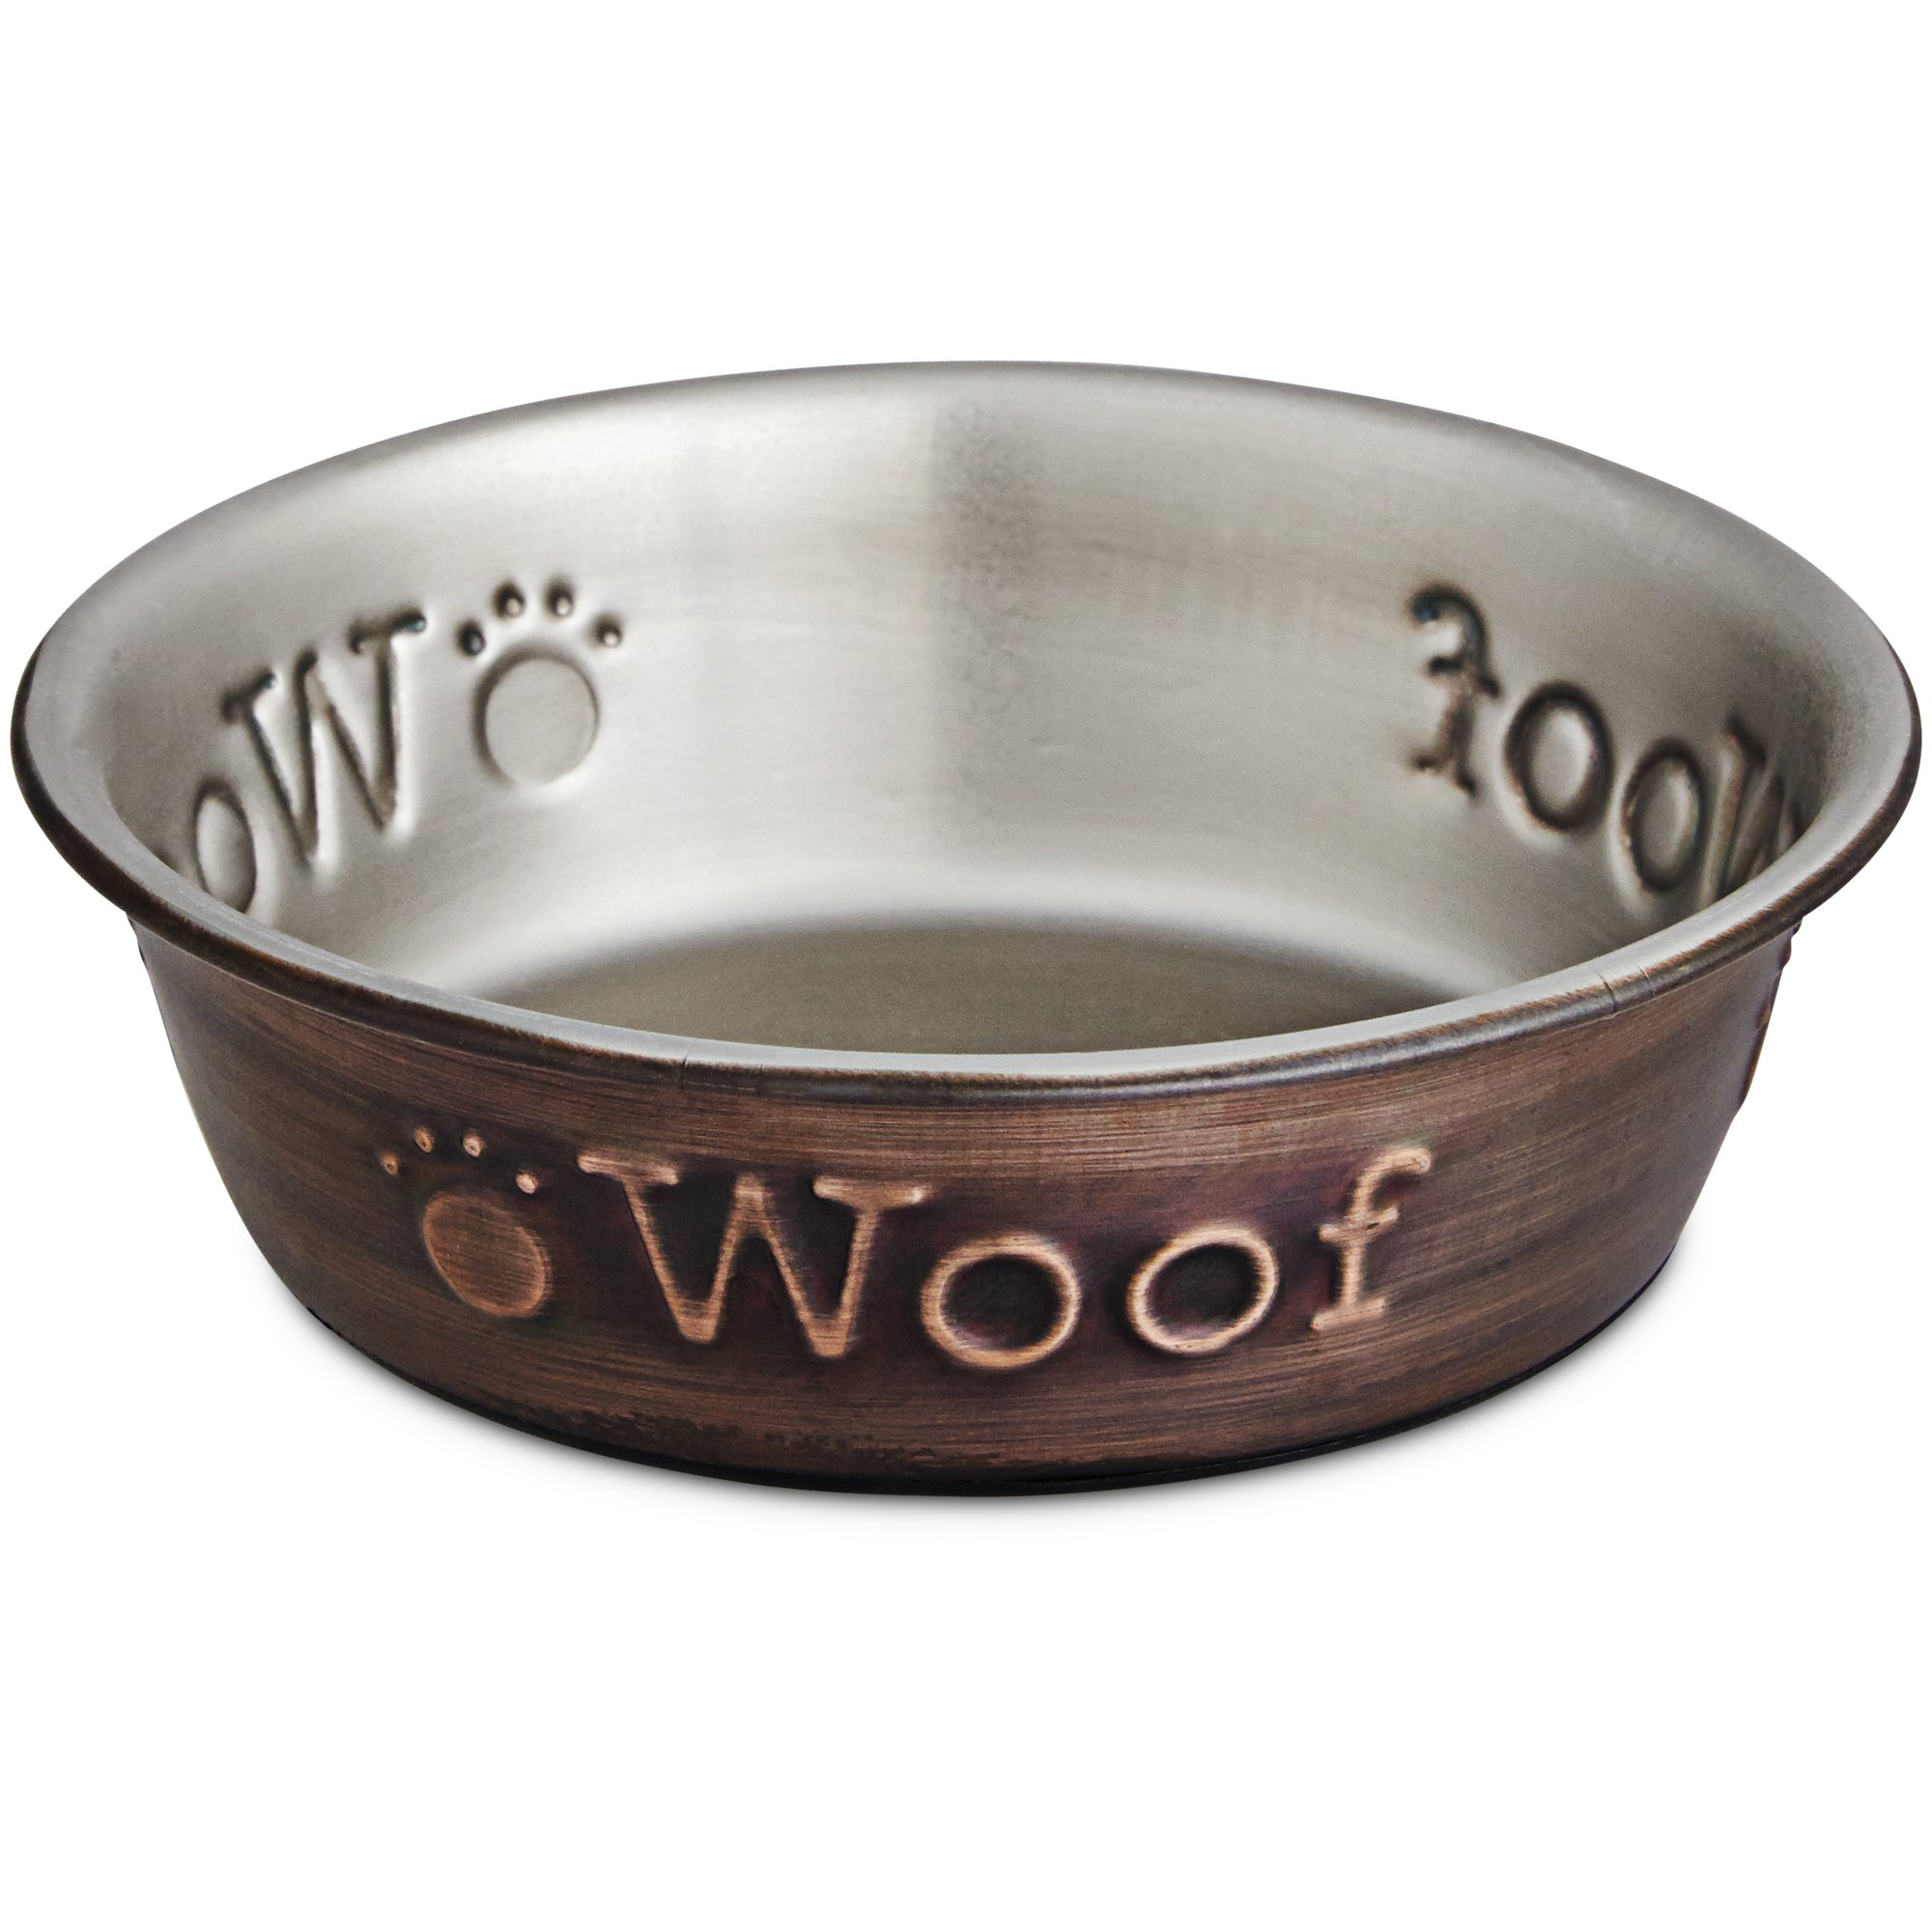 more options available harmony stainless steel woof copper dog bowl